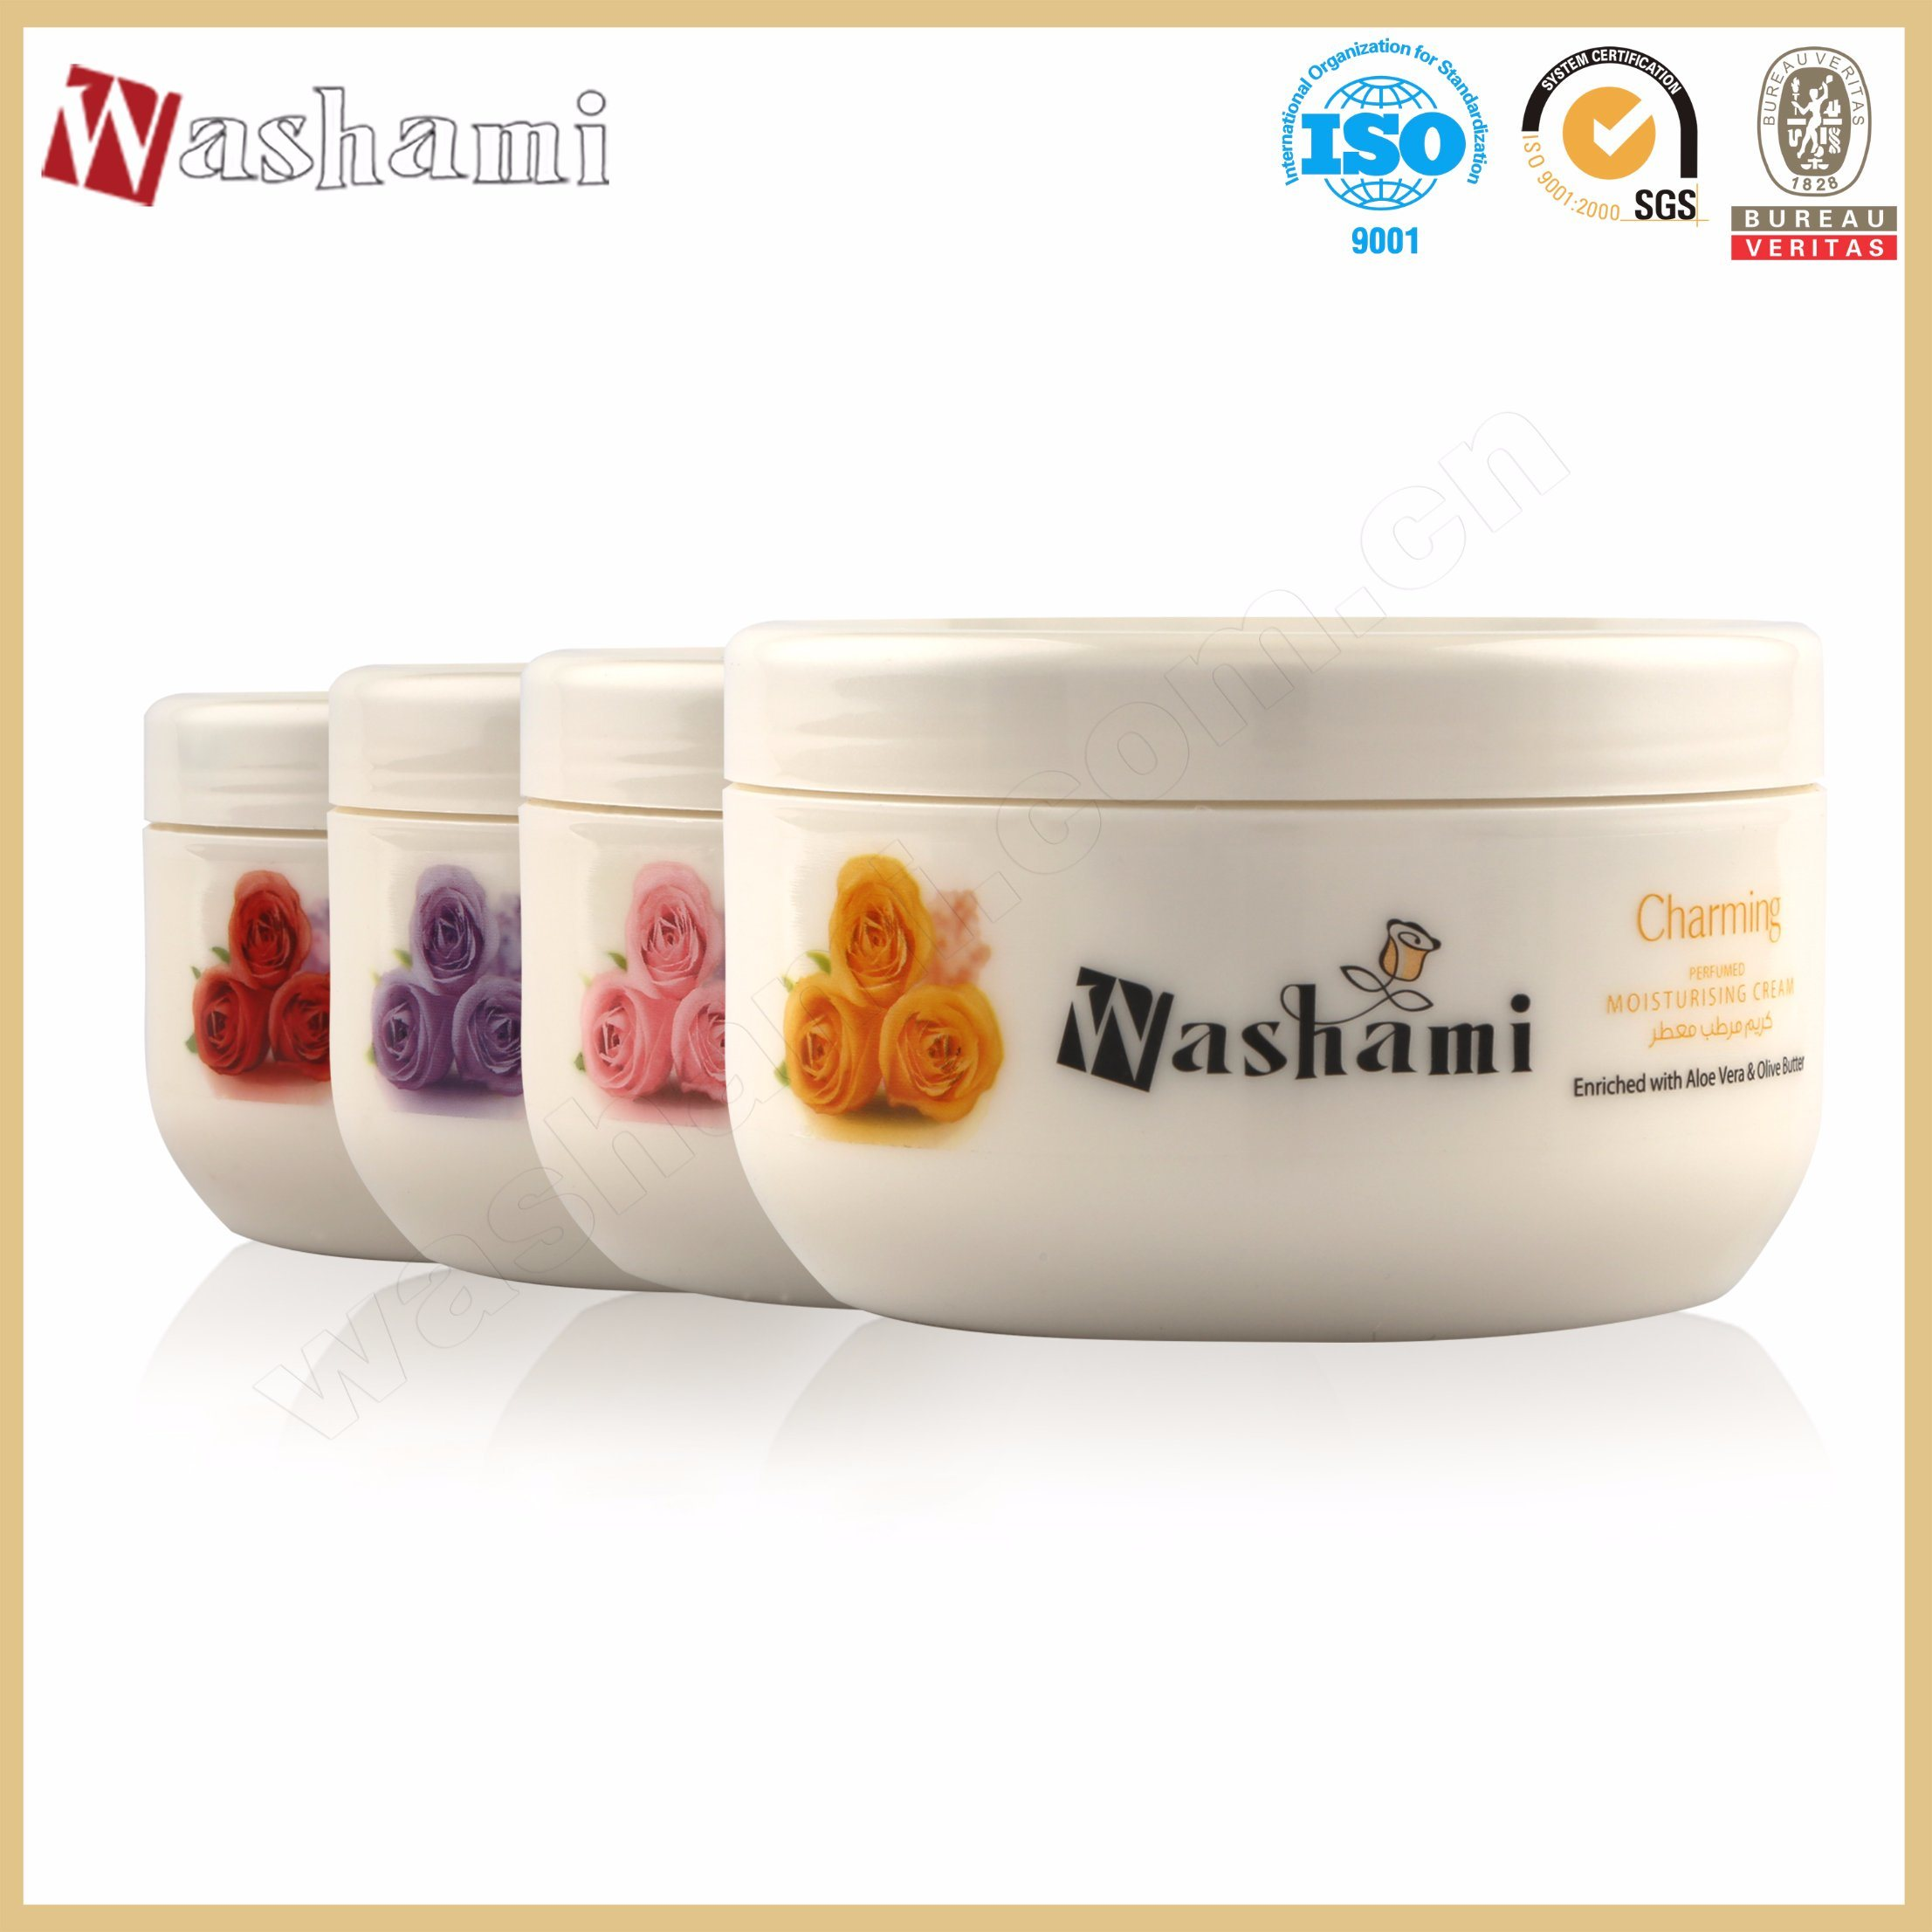 Washami Moisturizing Face Body Whitening Cream